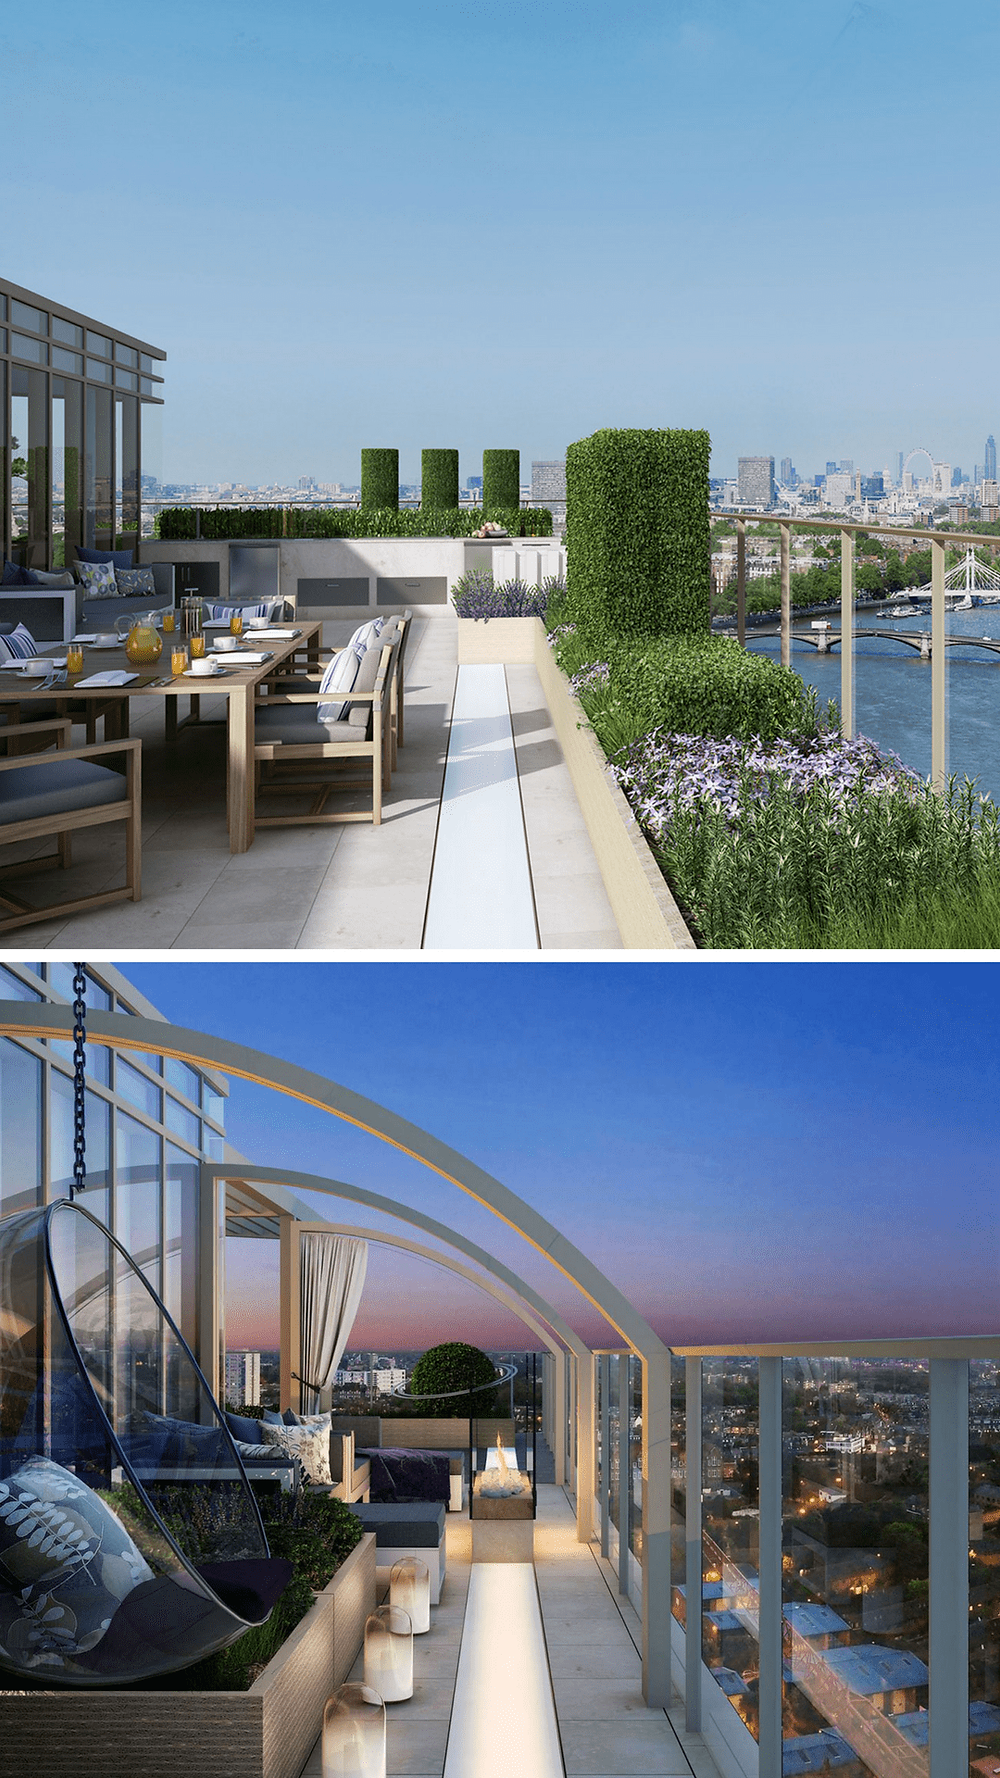 Top 10 Garden Designers in and around London, garden design, rooftop, terrace, formal gardens and lighting. Rooftop terrace with buxus plants, views of London and night lights